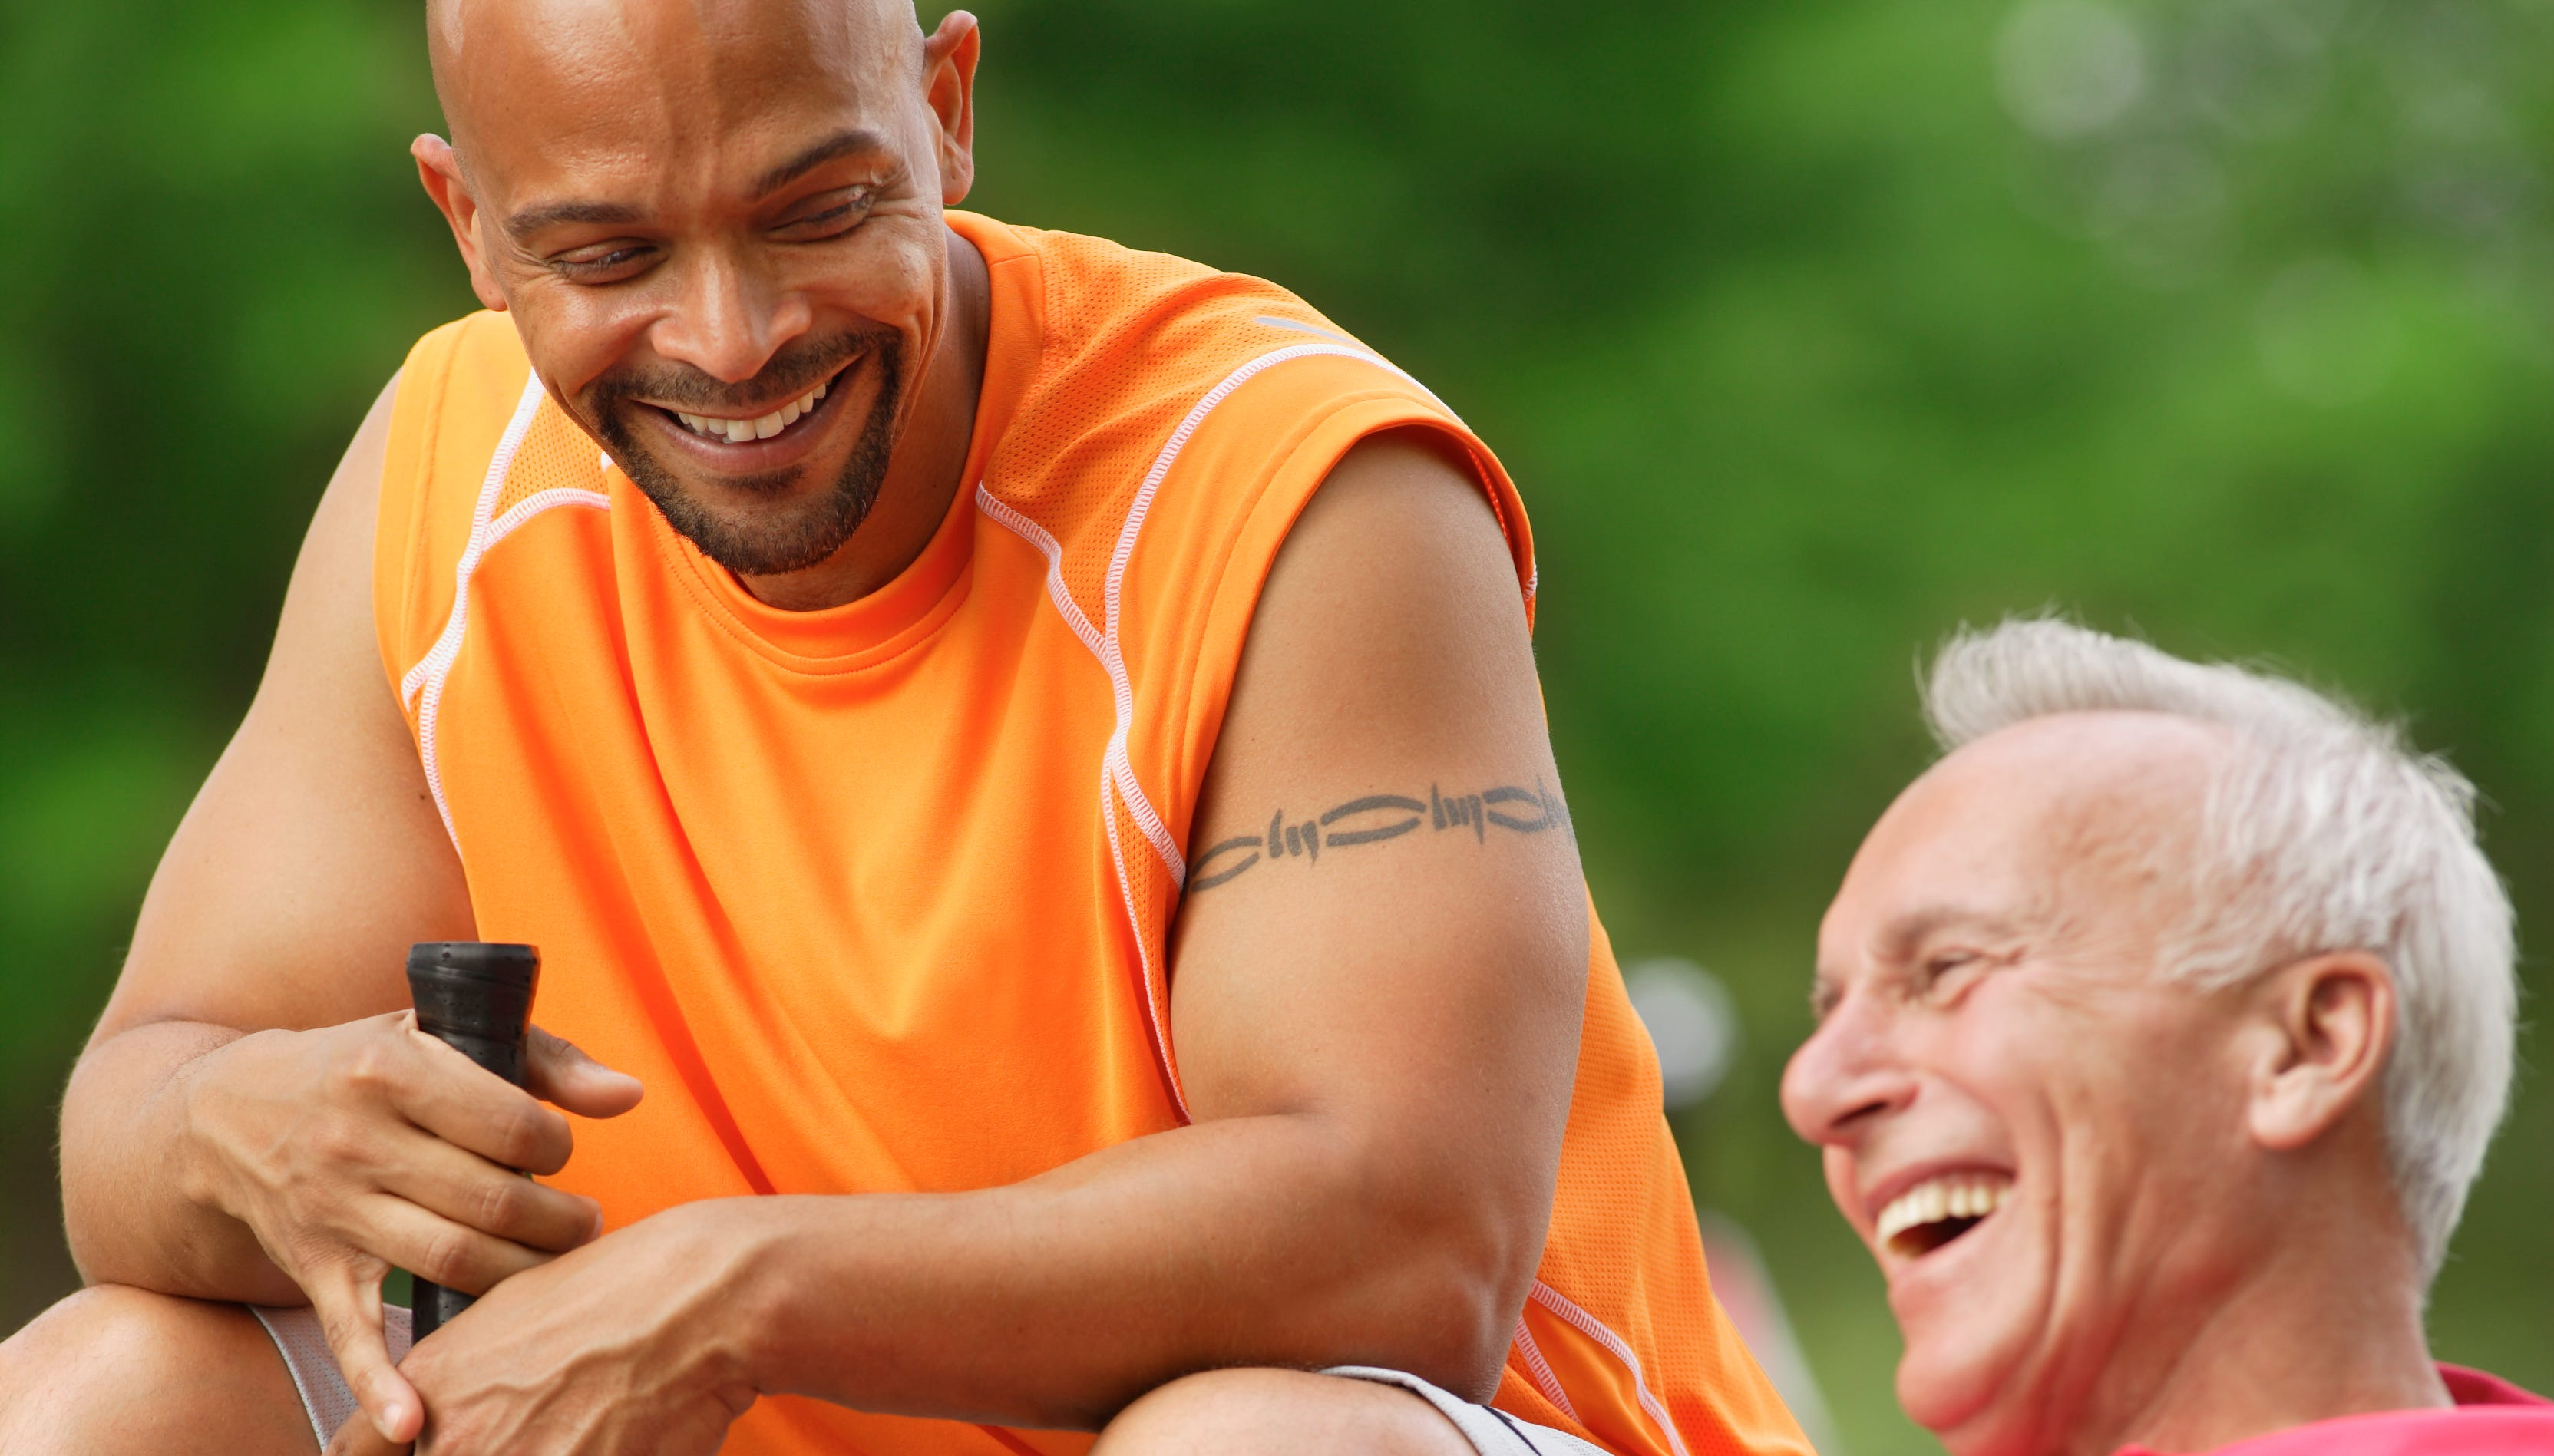 Recognizing the signs of a sports injury is important at any age.